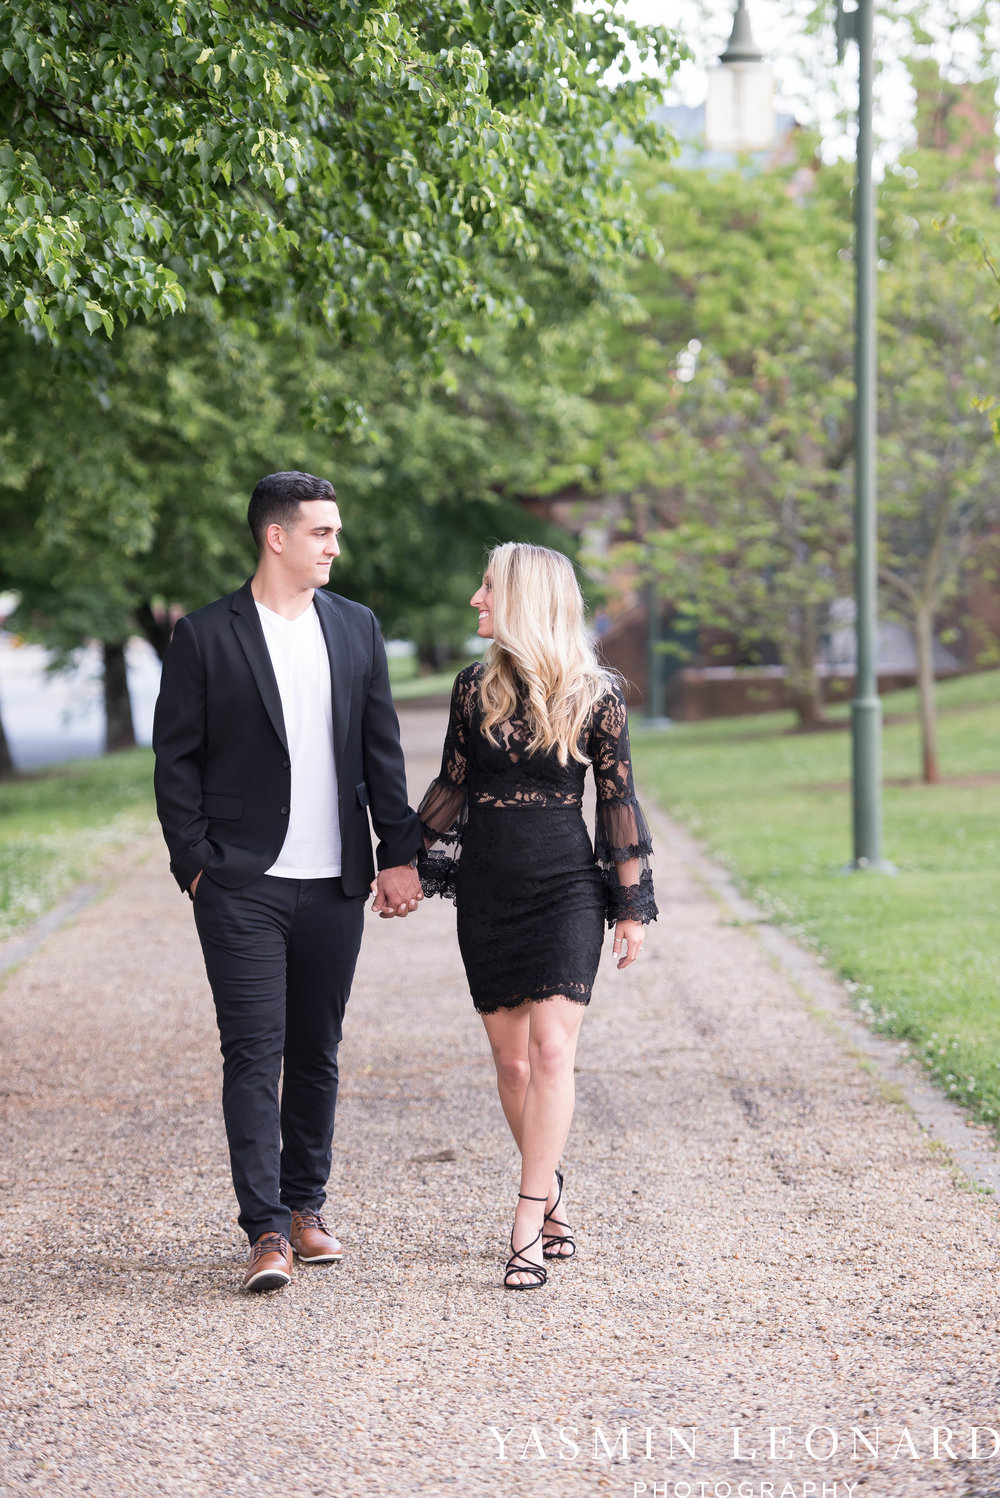 Downtown Winston Salem Engagement Session - NC Engaged - NC Weddings - Winston Salem Weddings - Yasmin Leonard Photography-29.jpg